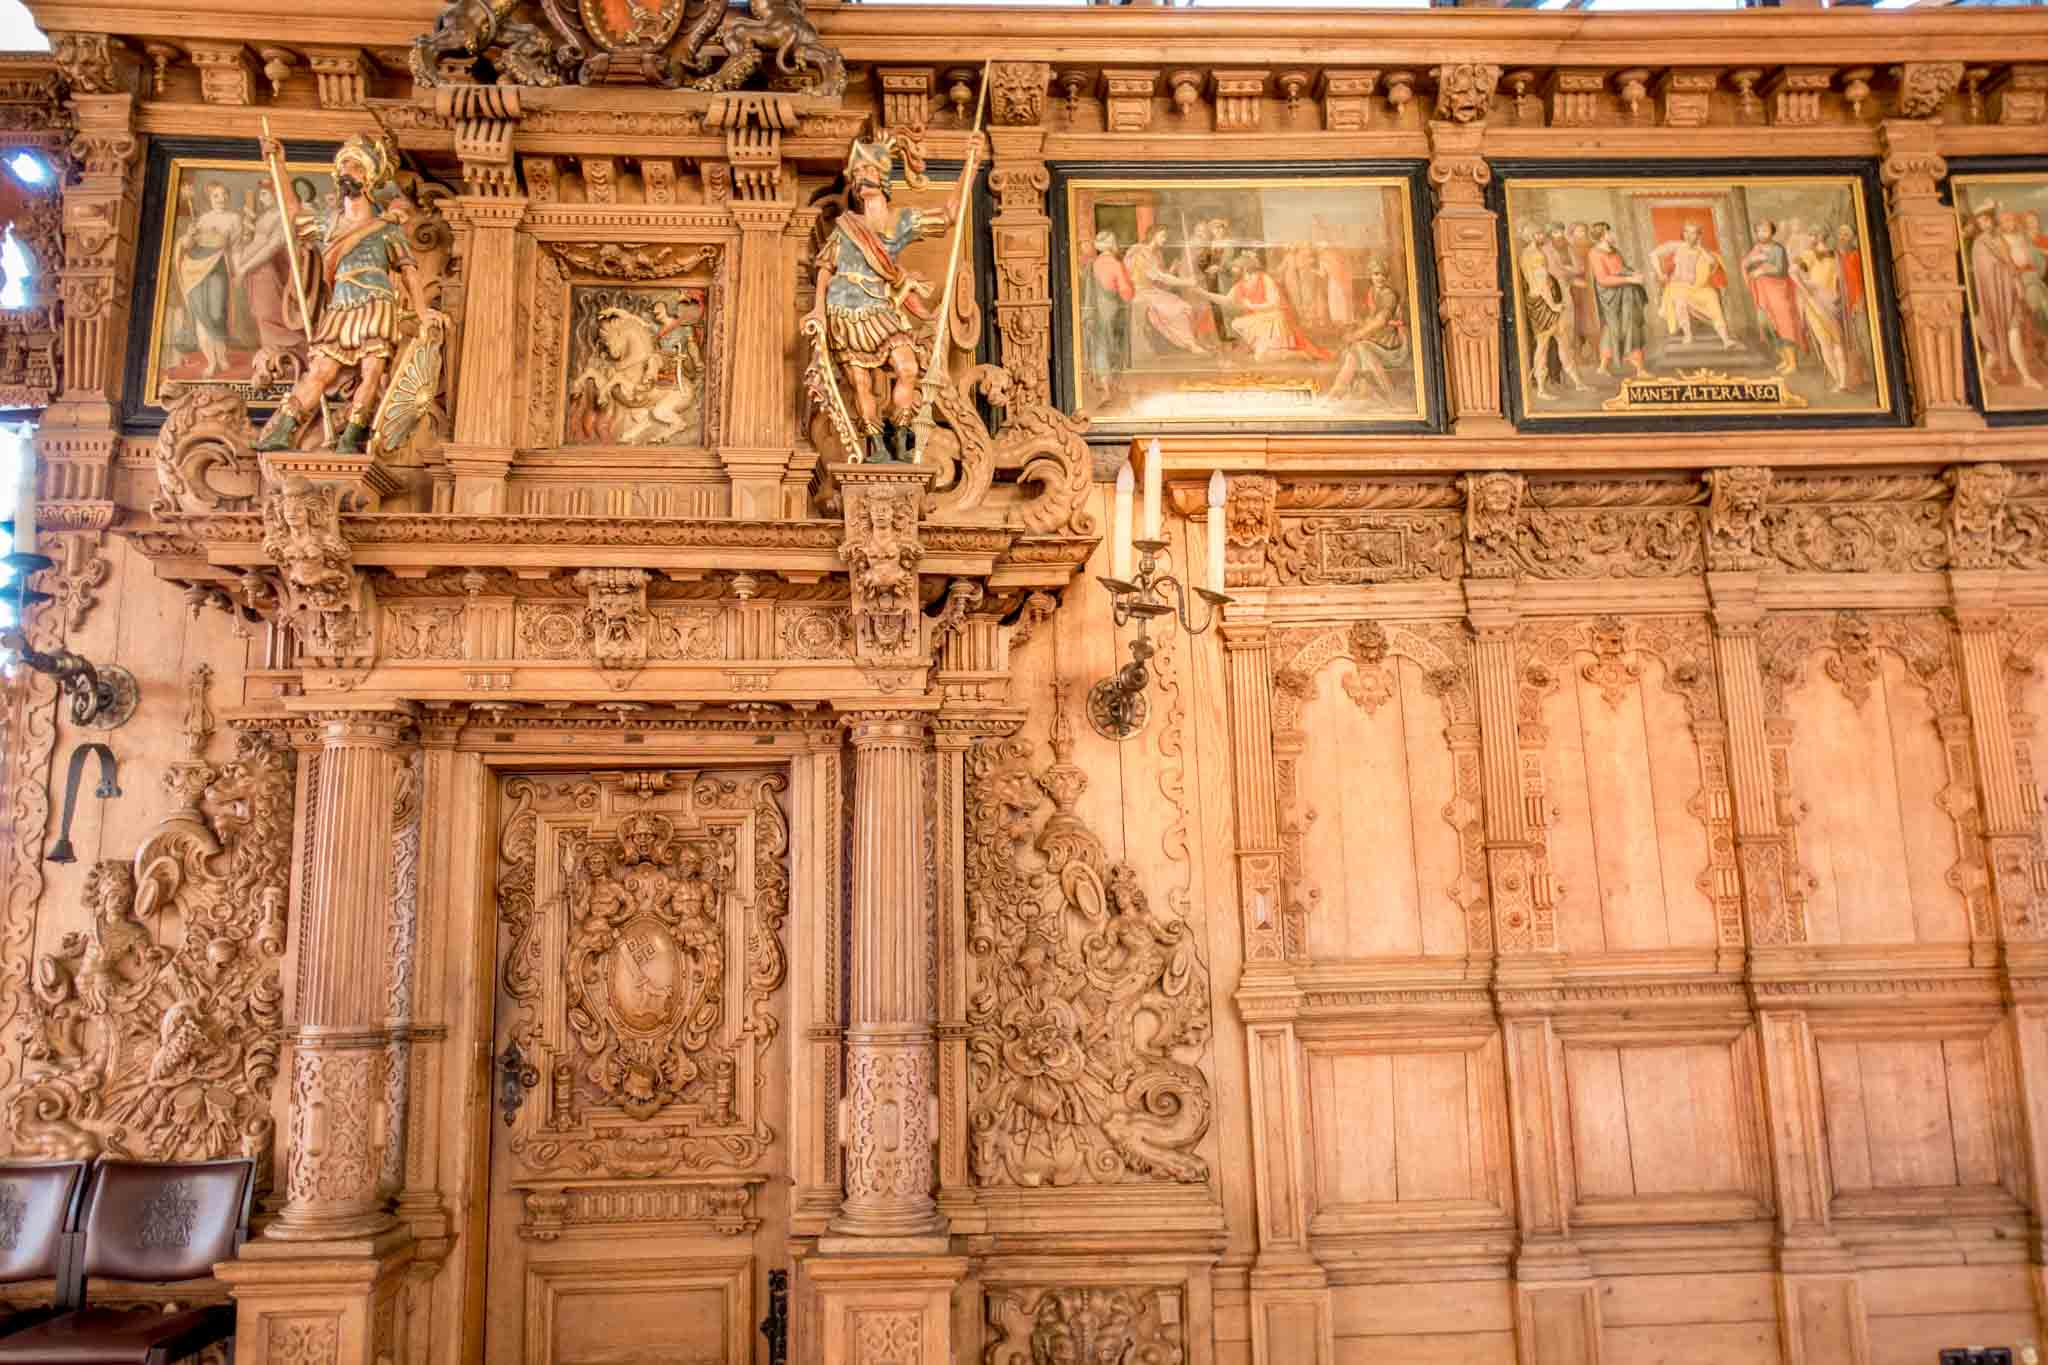 An intricately-carved wood wall with paintings